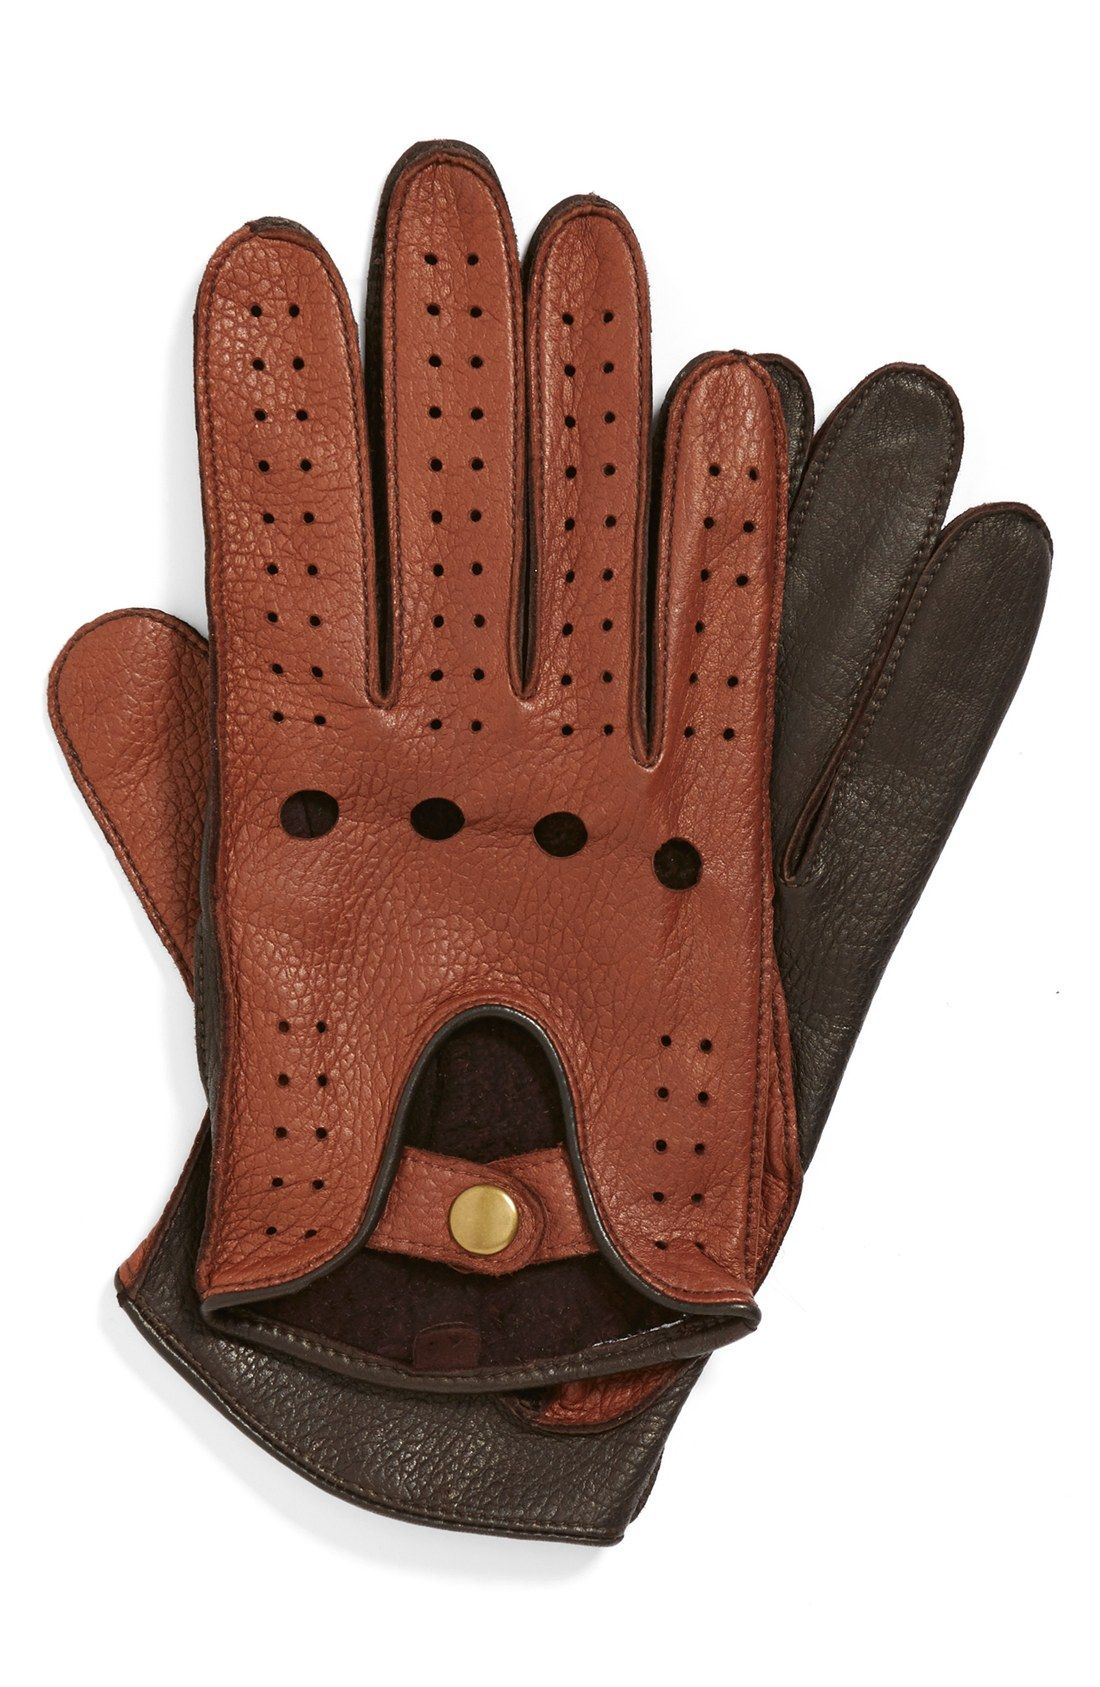 Mens gloves use iphone - John W Nordstrom Leather Gloves